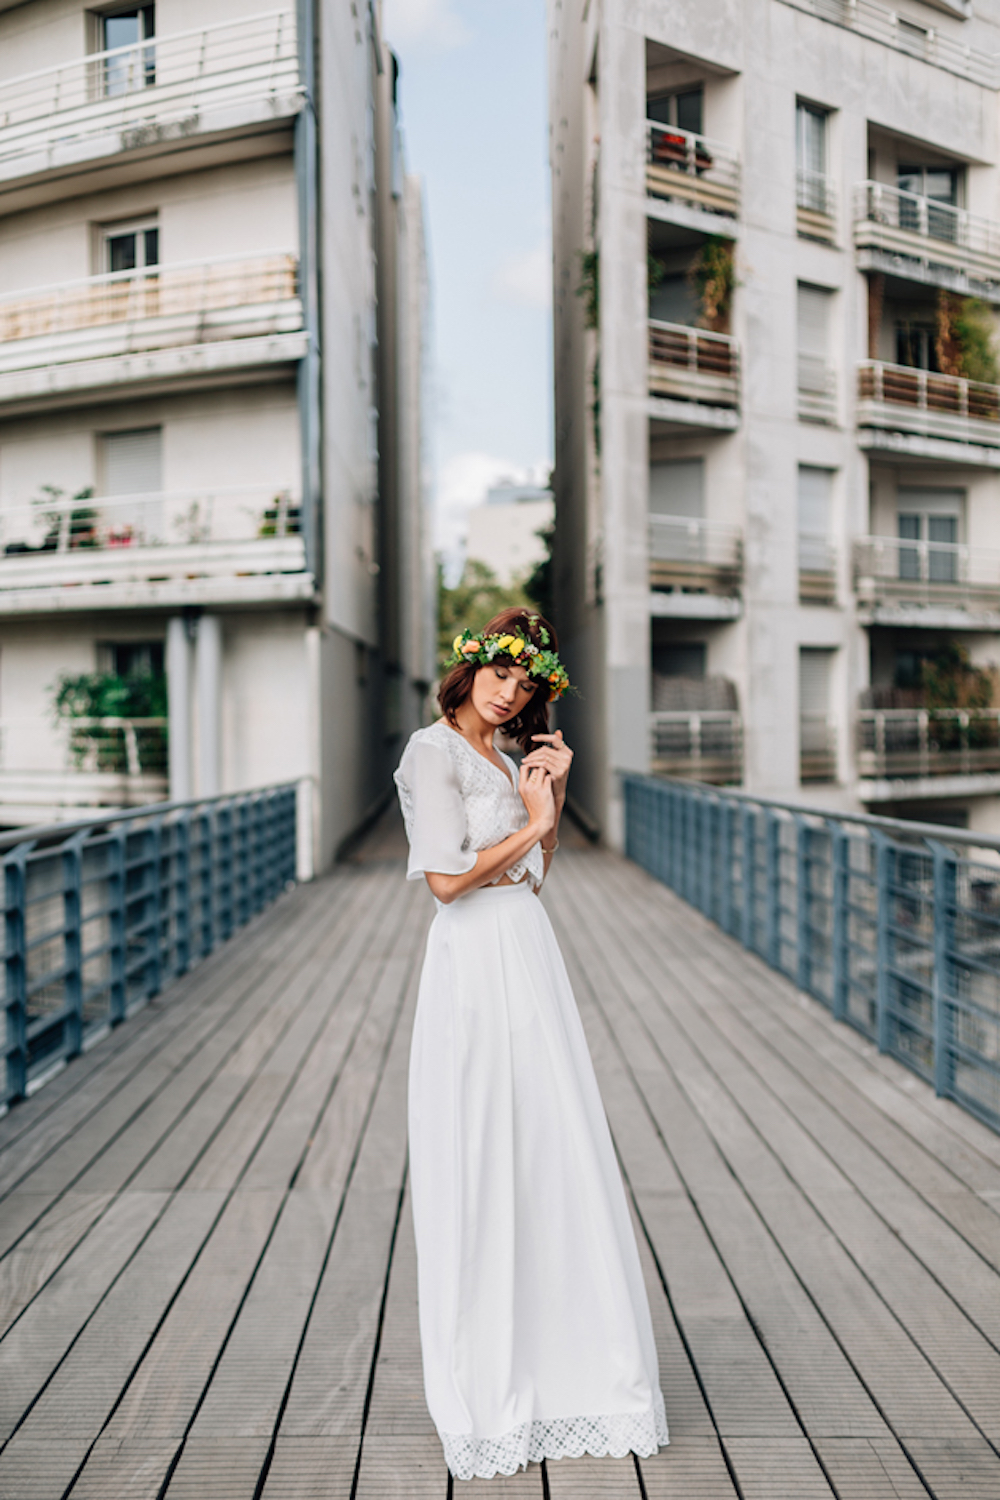 parisian-inspired-blog-mariagepierreatelier-photographe-mariage-paris-197.jpg